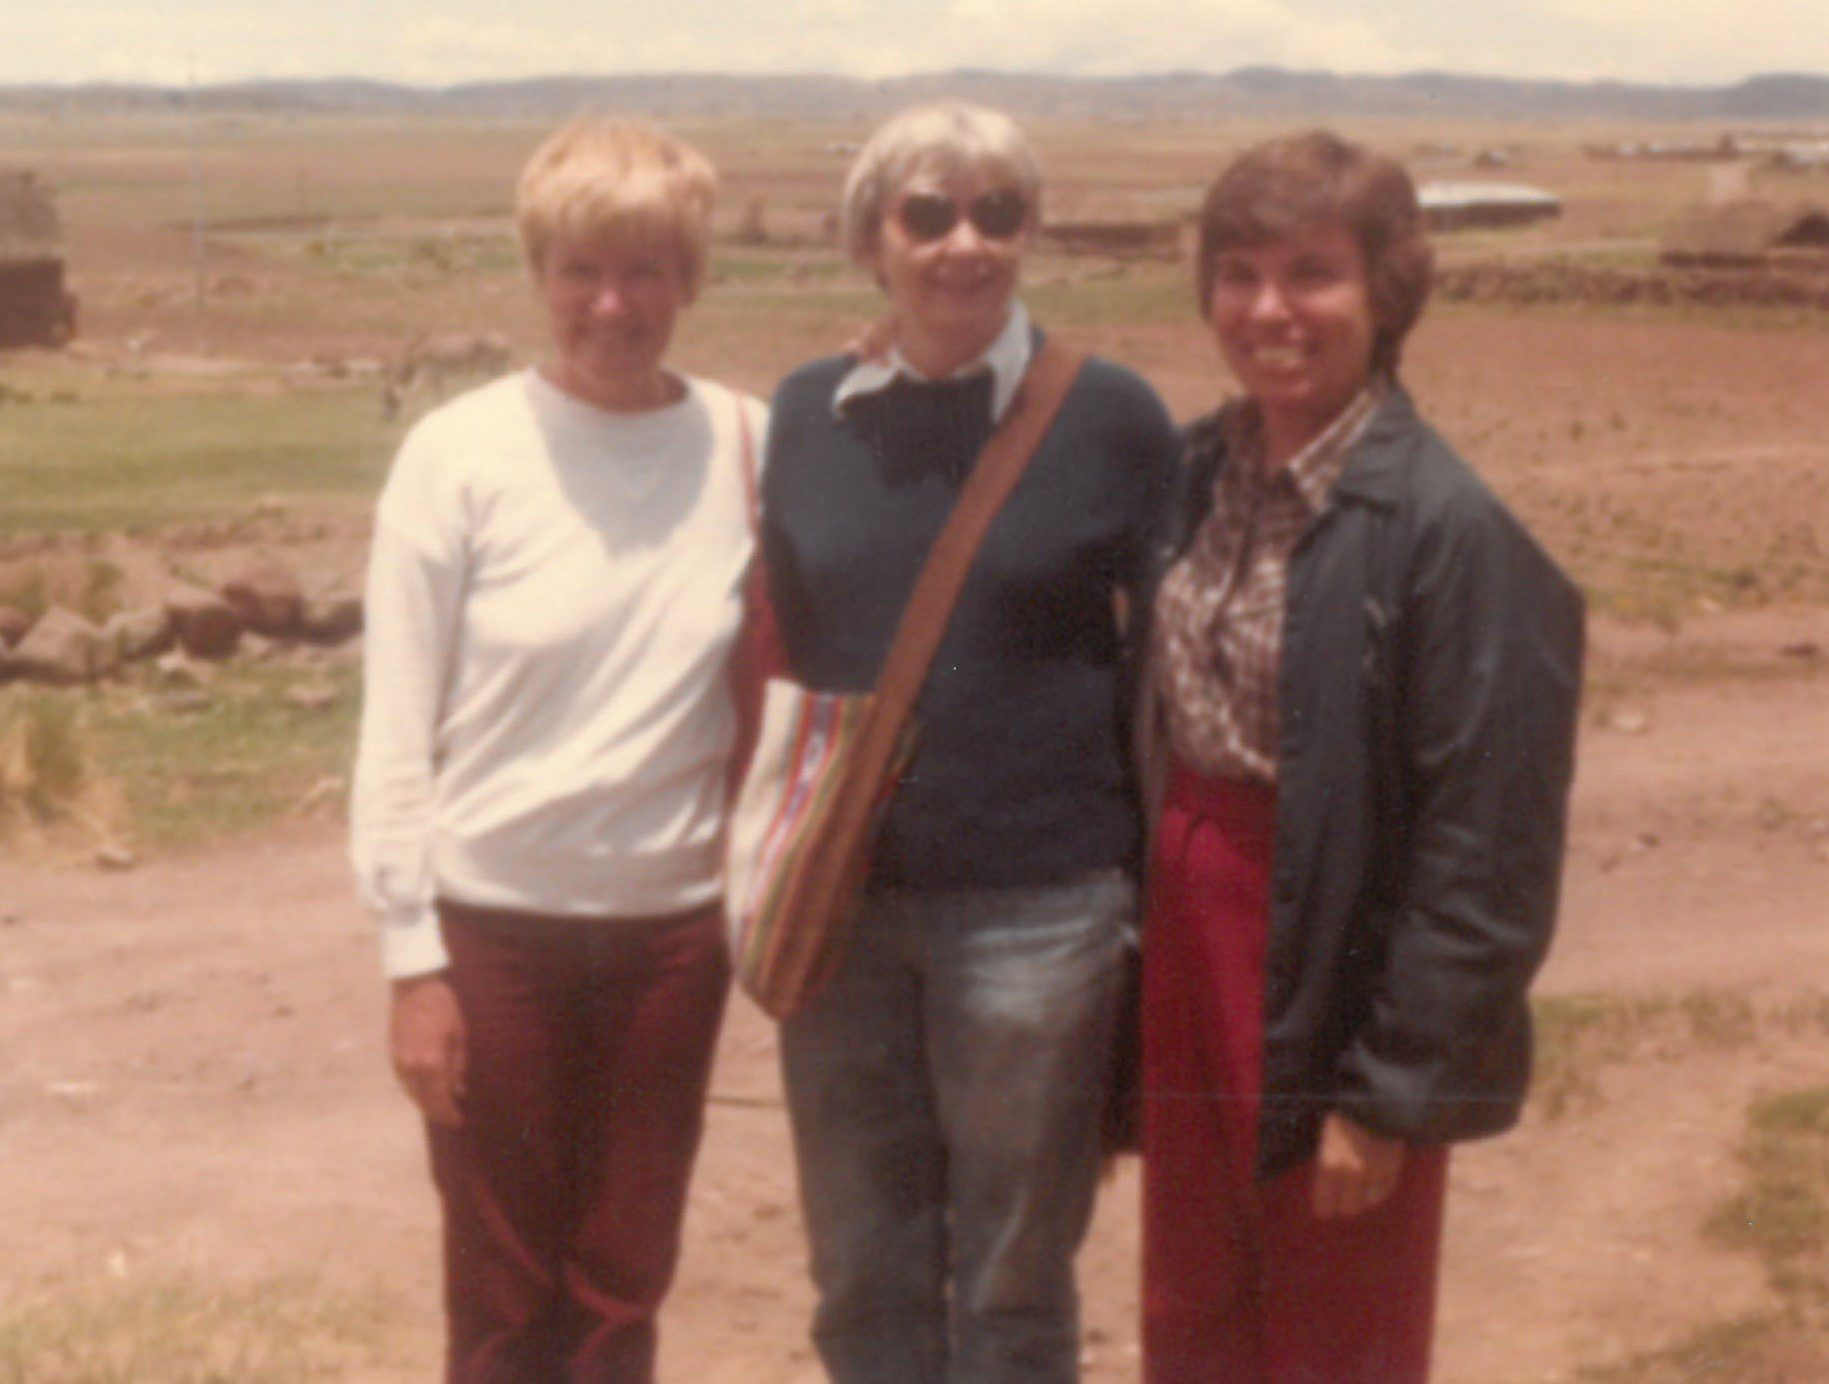 1979 – Missionaries to South America